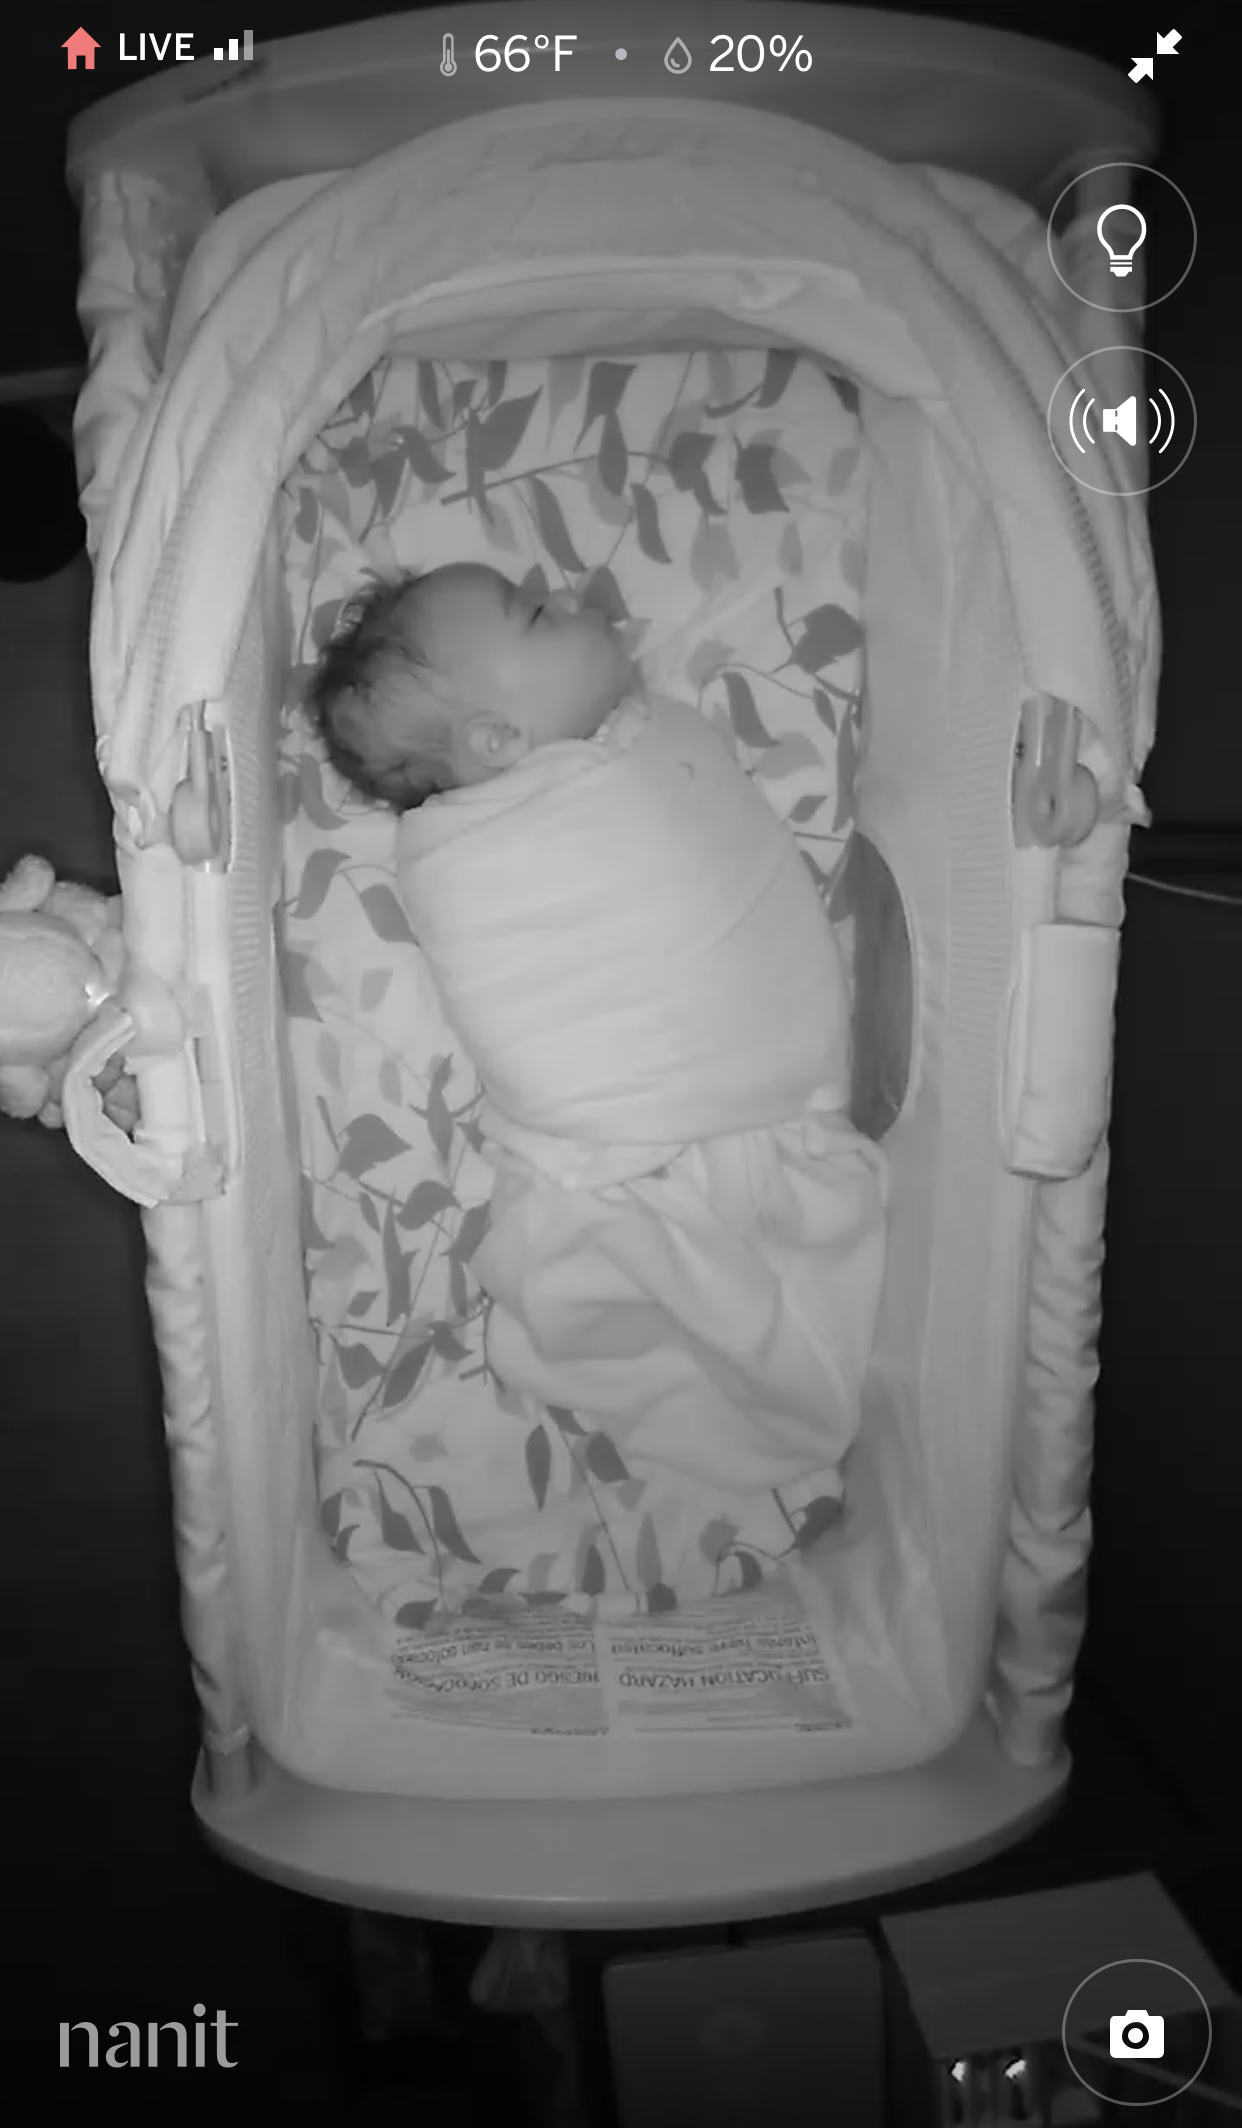 A Nanit review based on 100 days with the Nanit baby monitor